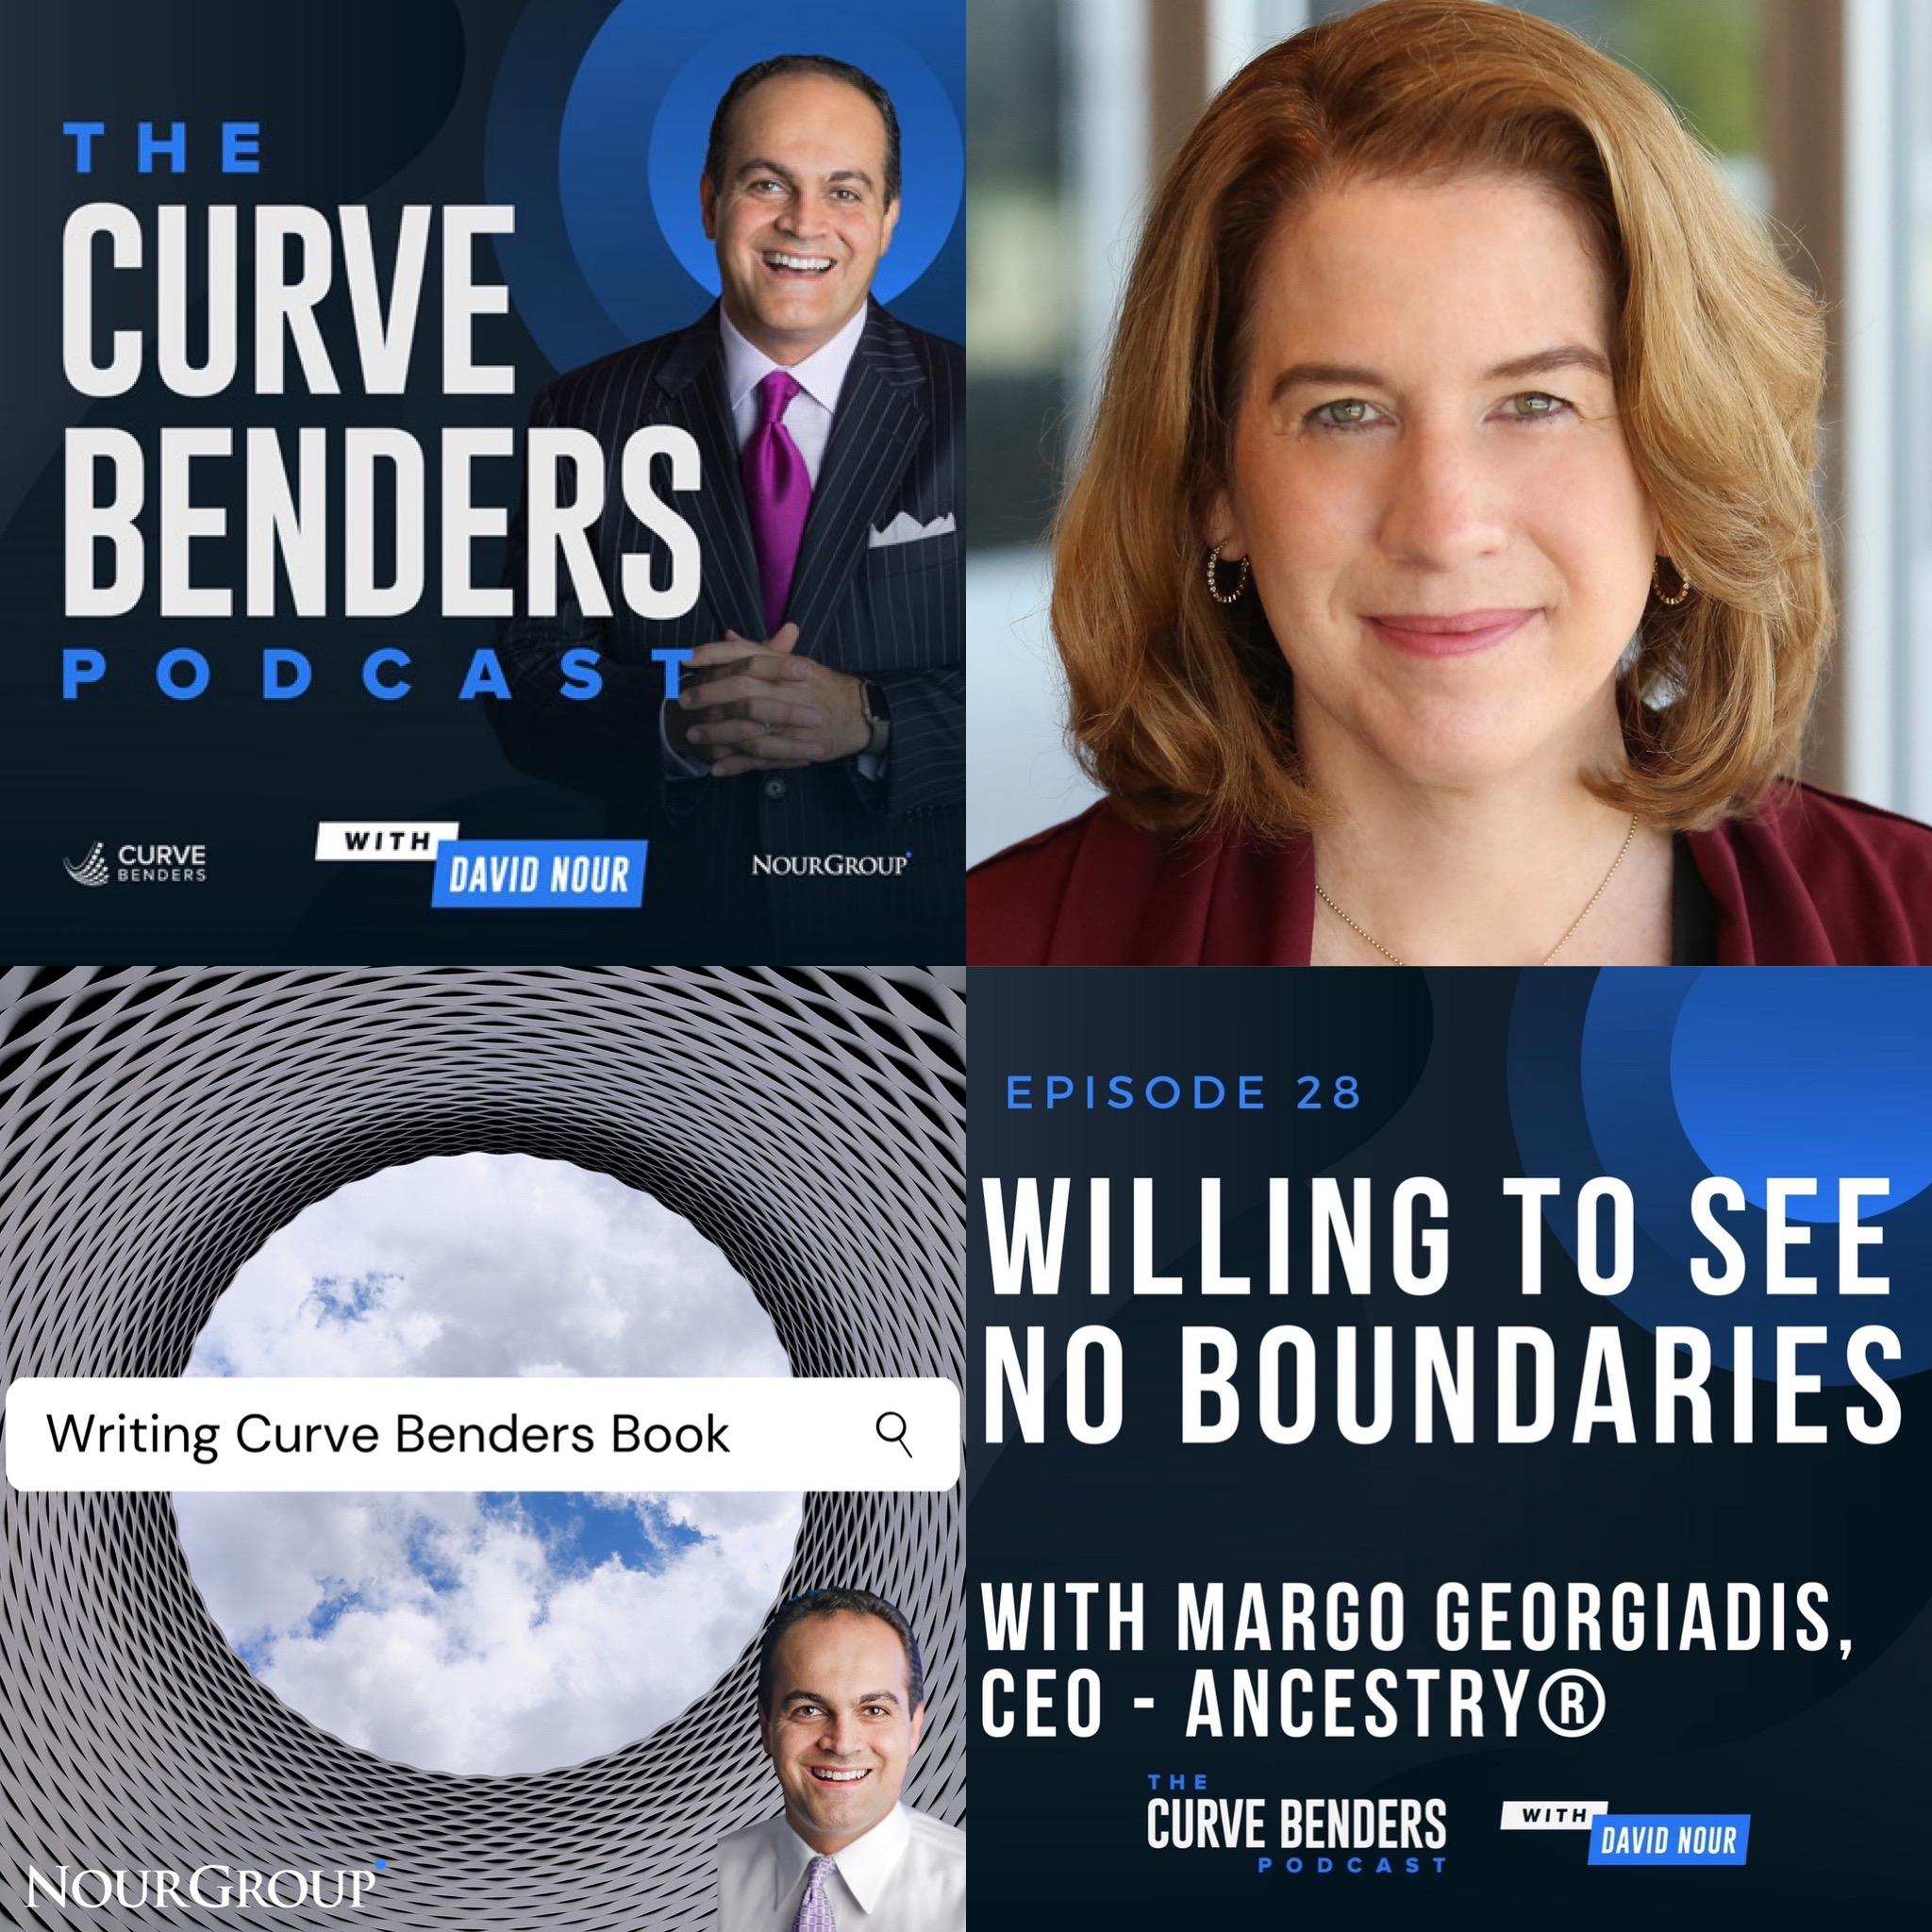 Curve Benders Podcast – Willing To See No Boundaries with Margo Georgiadis, CEO – Ancestry®